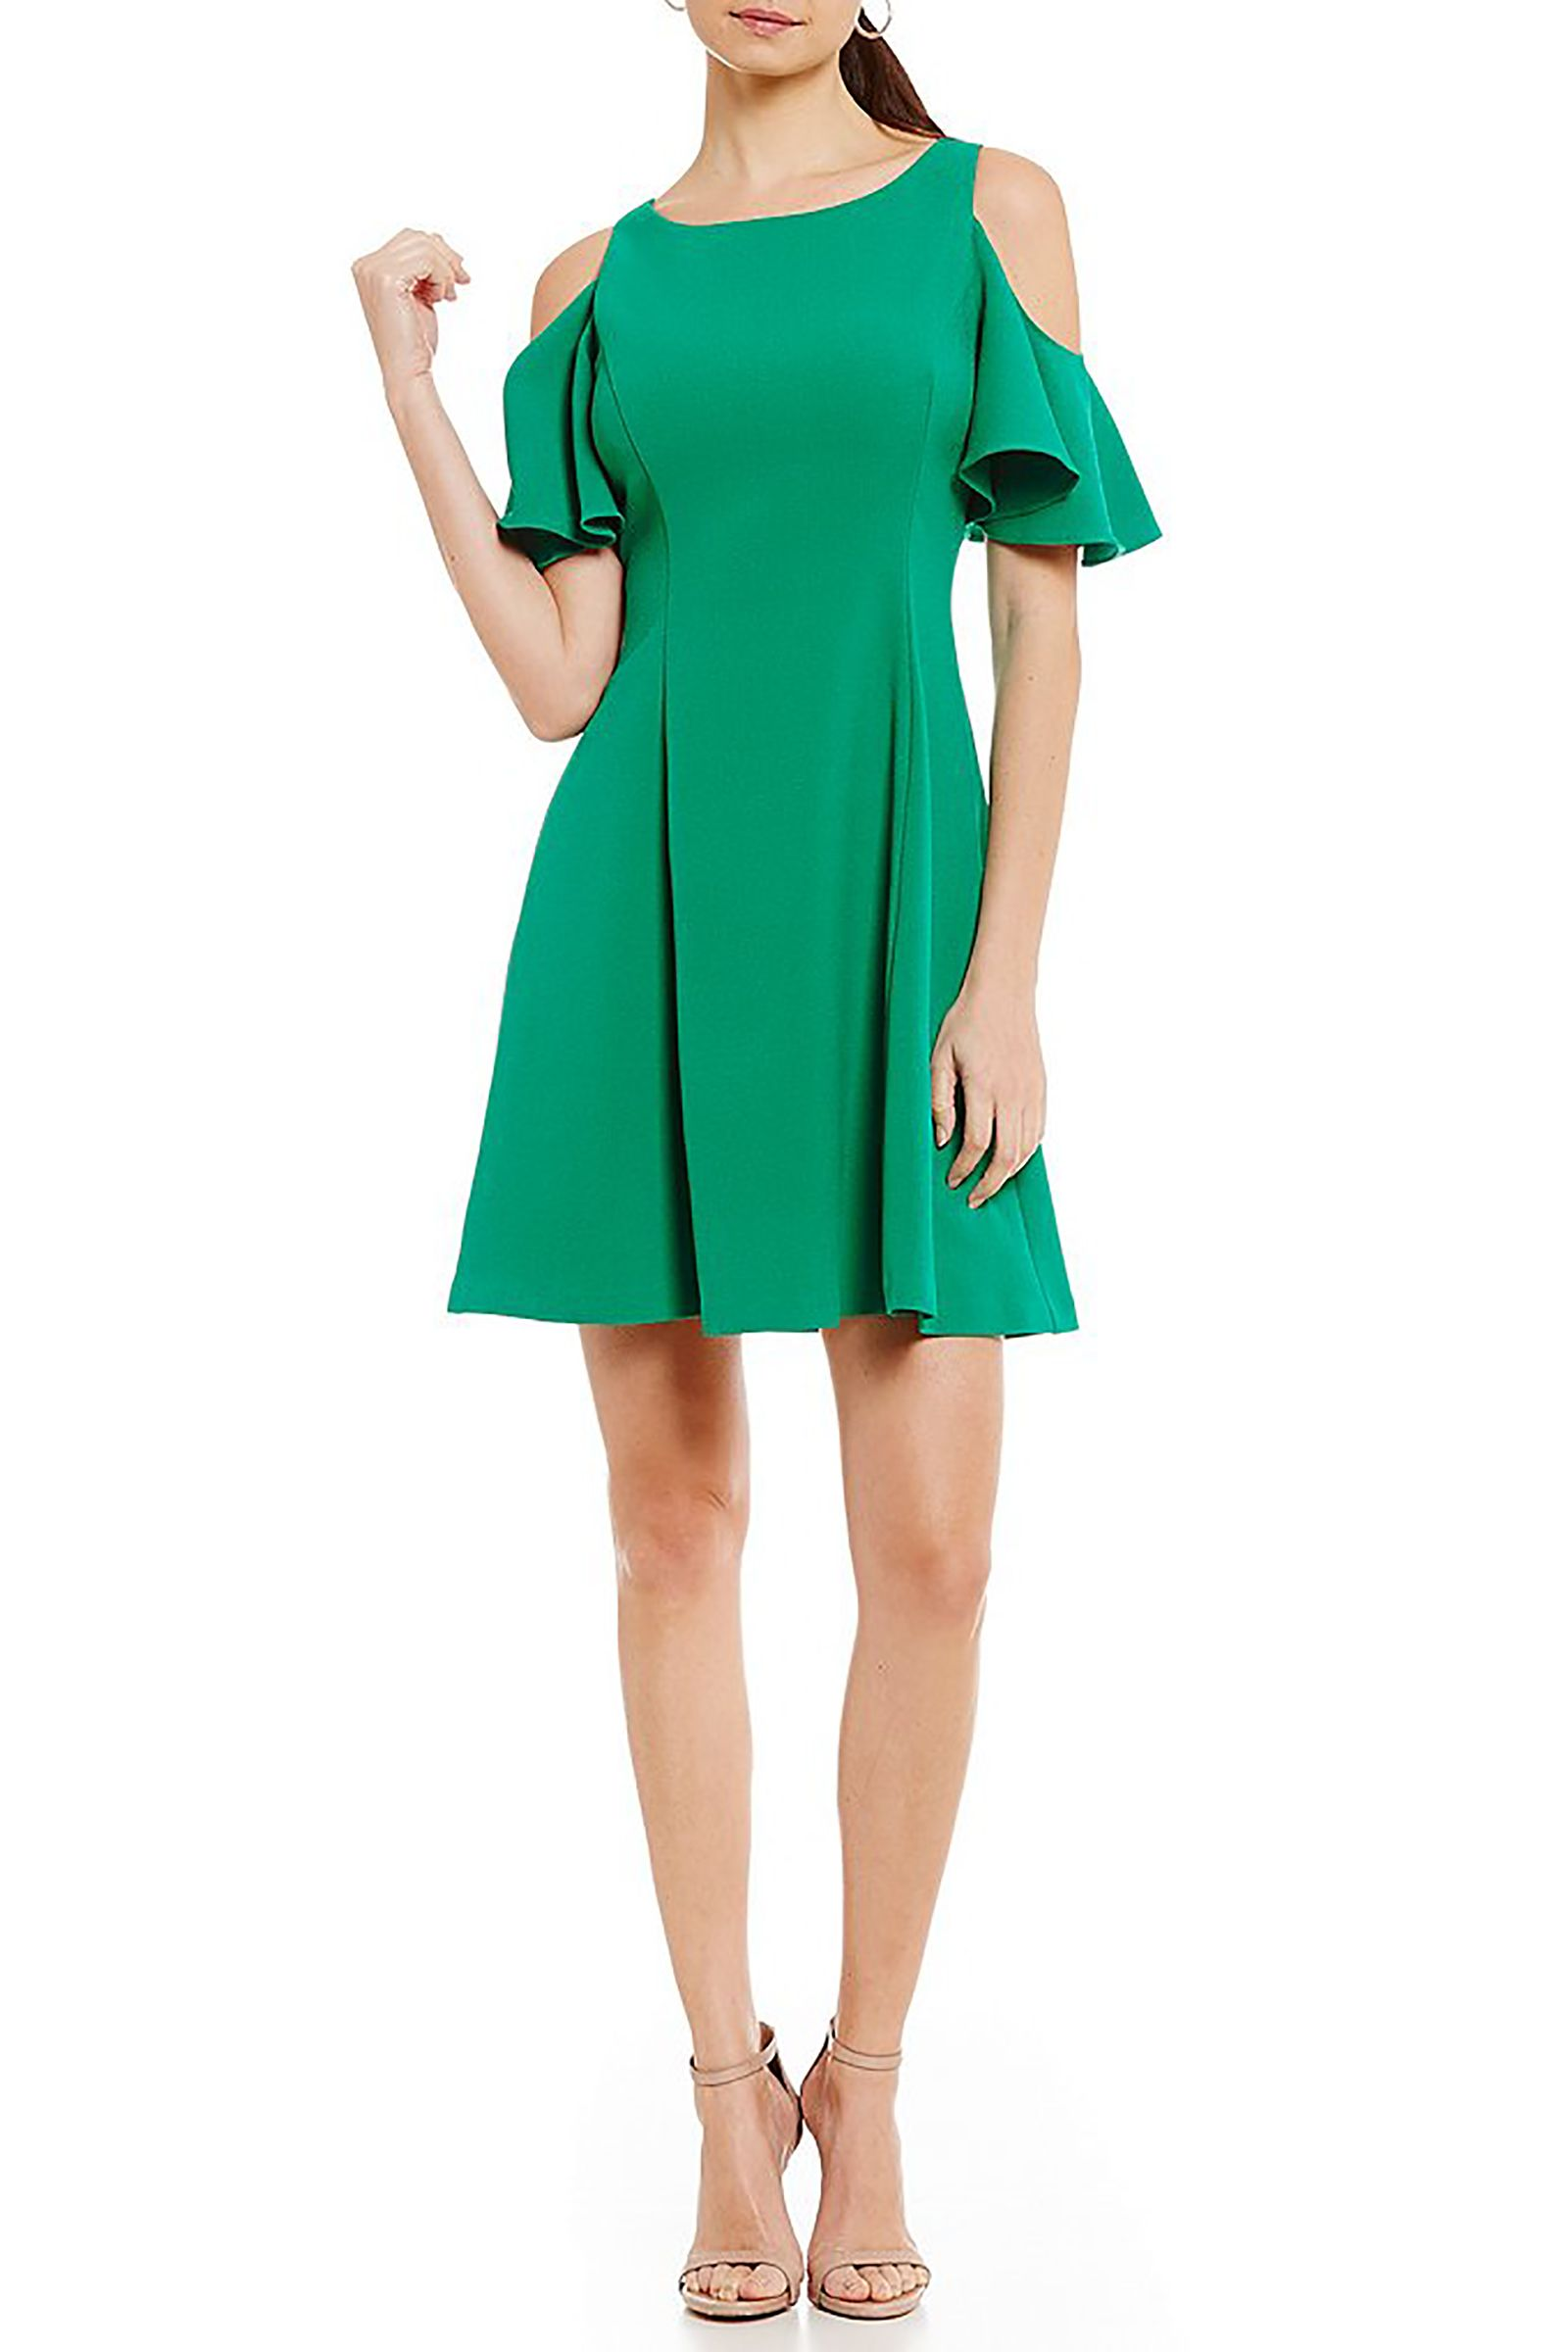 New Year\'s Eve Outfit Ideas - New Year\'s Eve Dresses Under $100